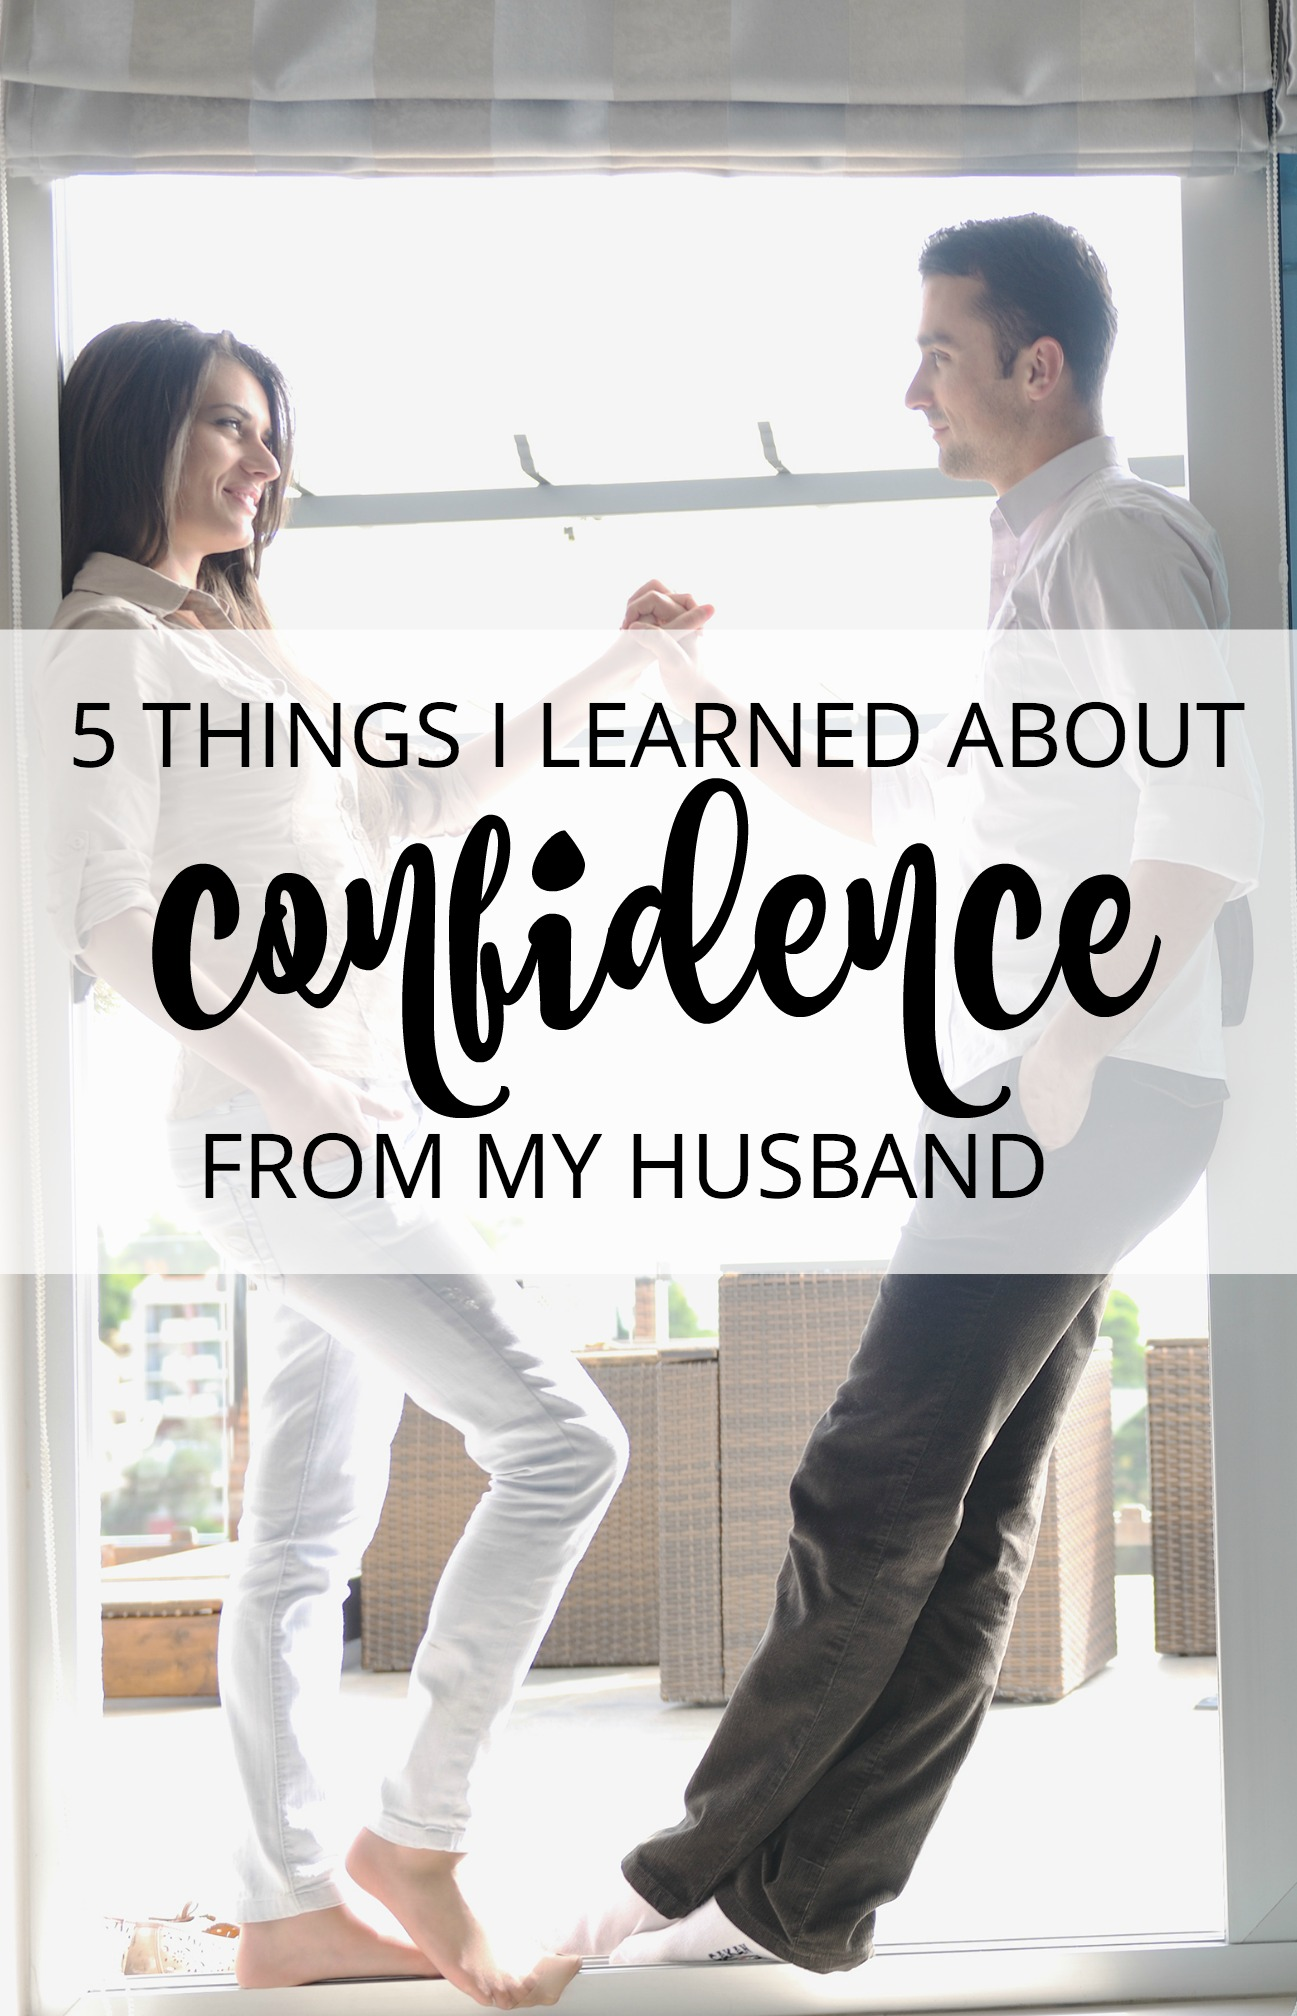 My husband has taught me a lot about confidence and self-esteem in ten years of marriage. Here are a few lessons I've learned from him that helped boost my self-confidence.